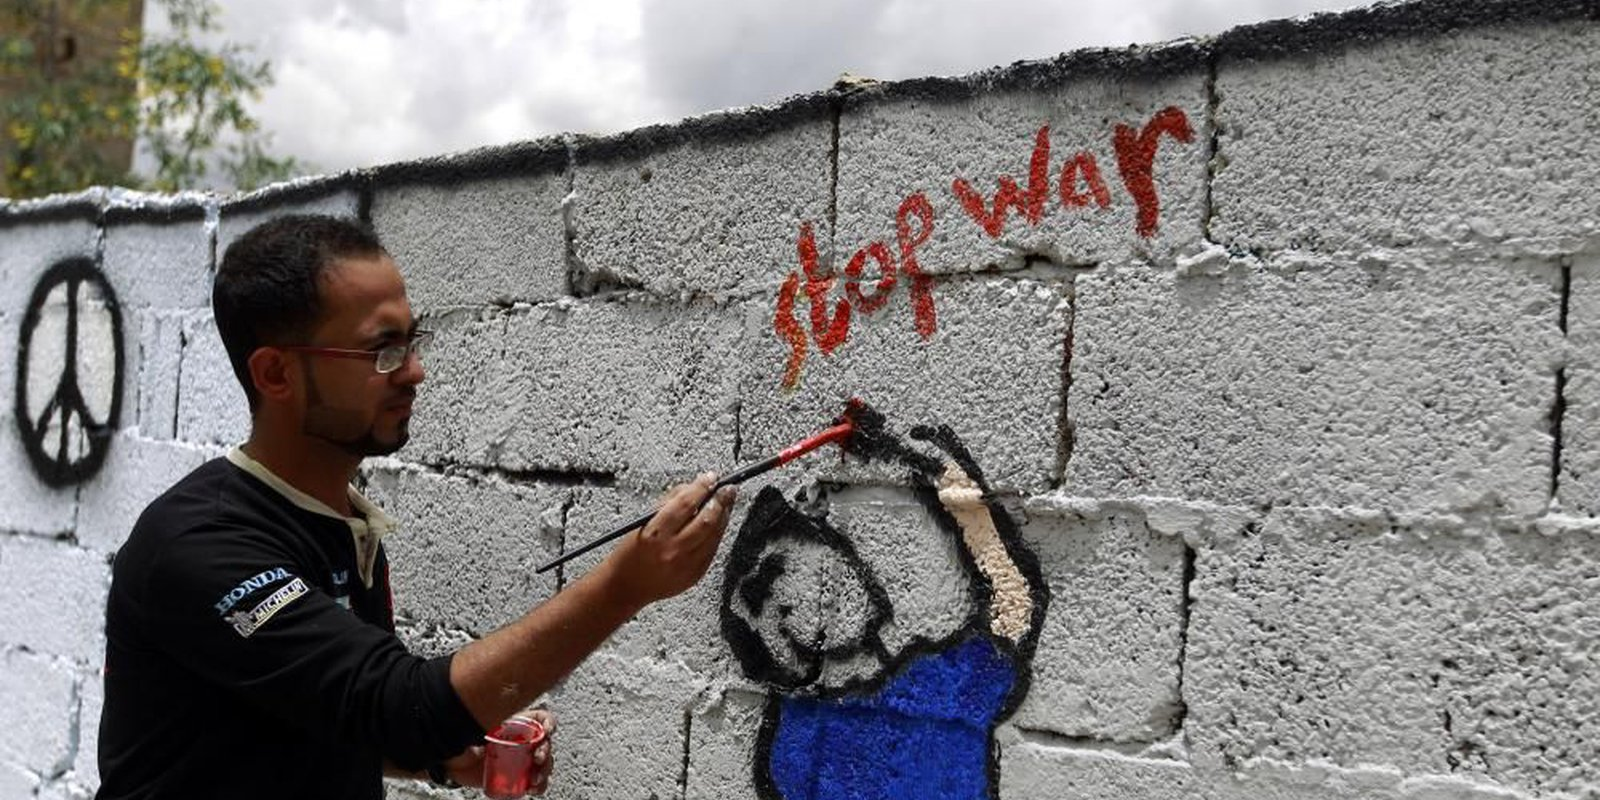 Image — A Yemeni artist painting on a wall in the capital Sanaa in support of peace. Photo byMOHAMMED HUWAIS/AFP via Getty Images.